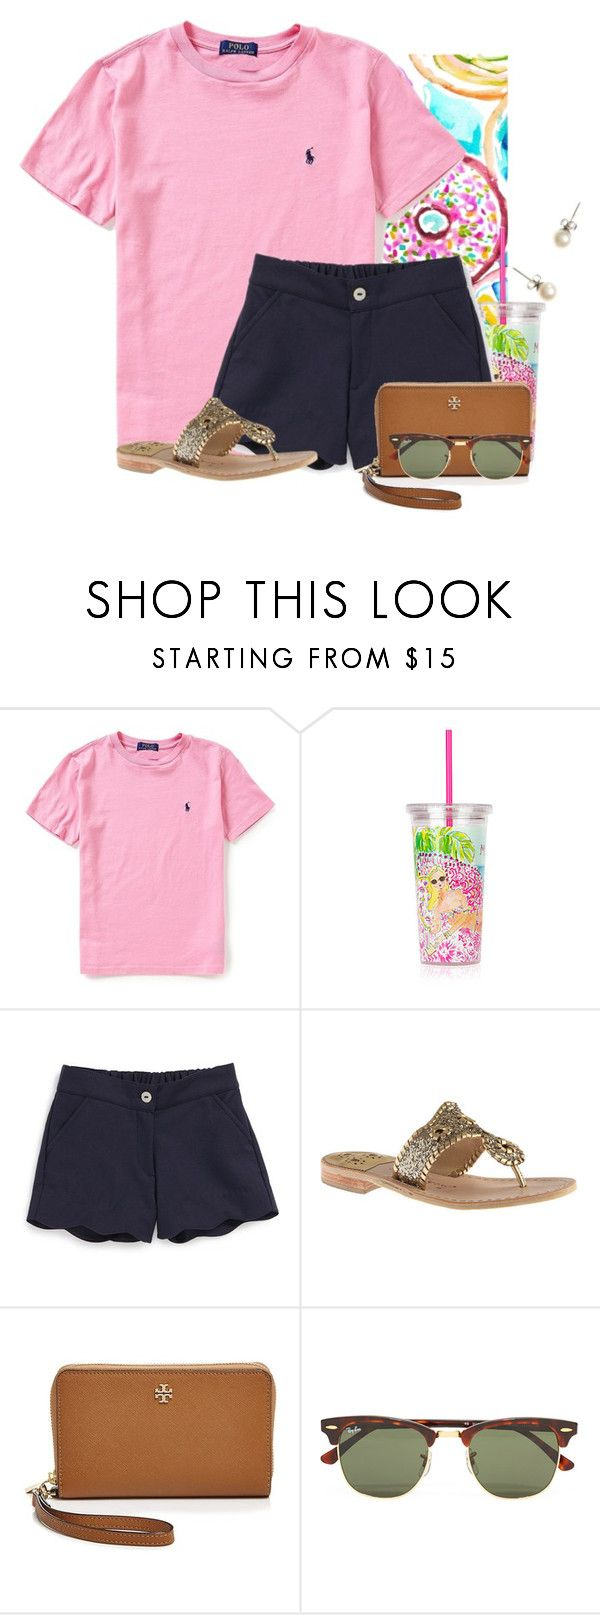 """Donuts and milk"" by flroasburn on Polyvore featuring Ralph Lauren, Lilly Pulitzer, Oscar de la Renta, Jack Rogers, Tory Burch, Ray-Ban and J.Crew"